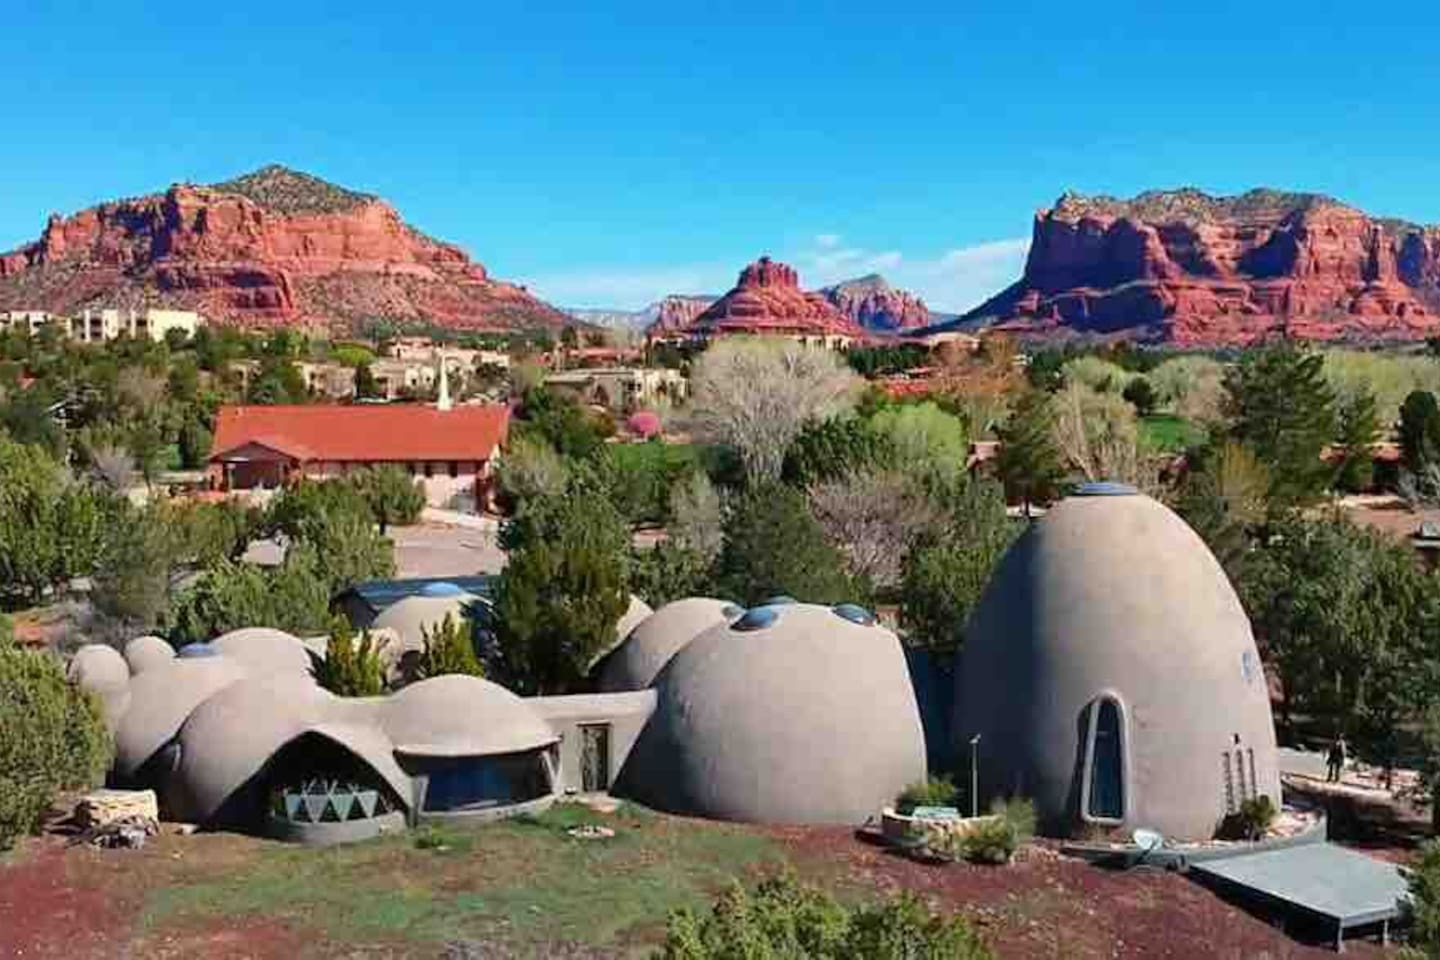 Drone view of the Sedona Domes' ten domes in a ring with the  Bell Rock Vortex in middle background, Castle Rock to the left and Courthouse Butte to the right.